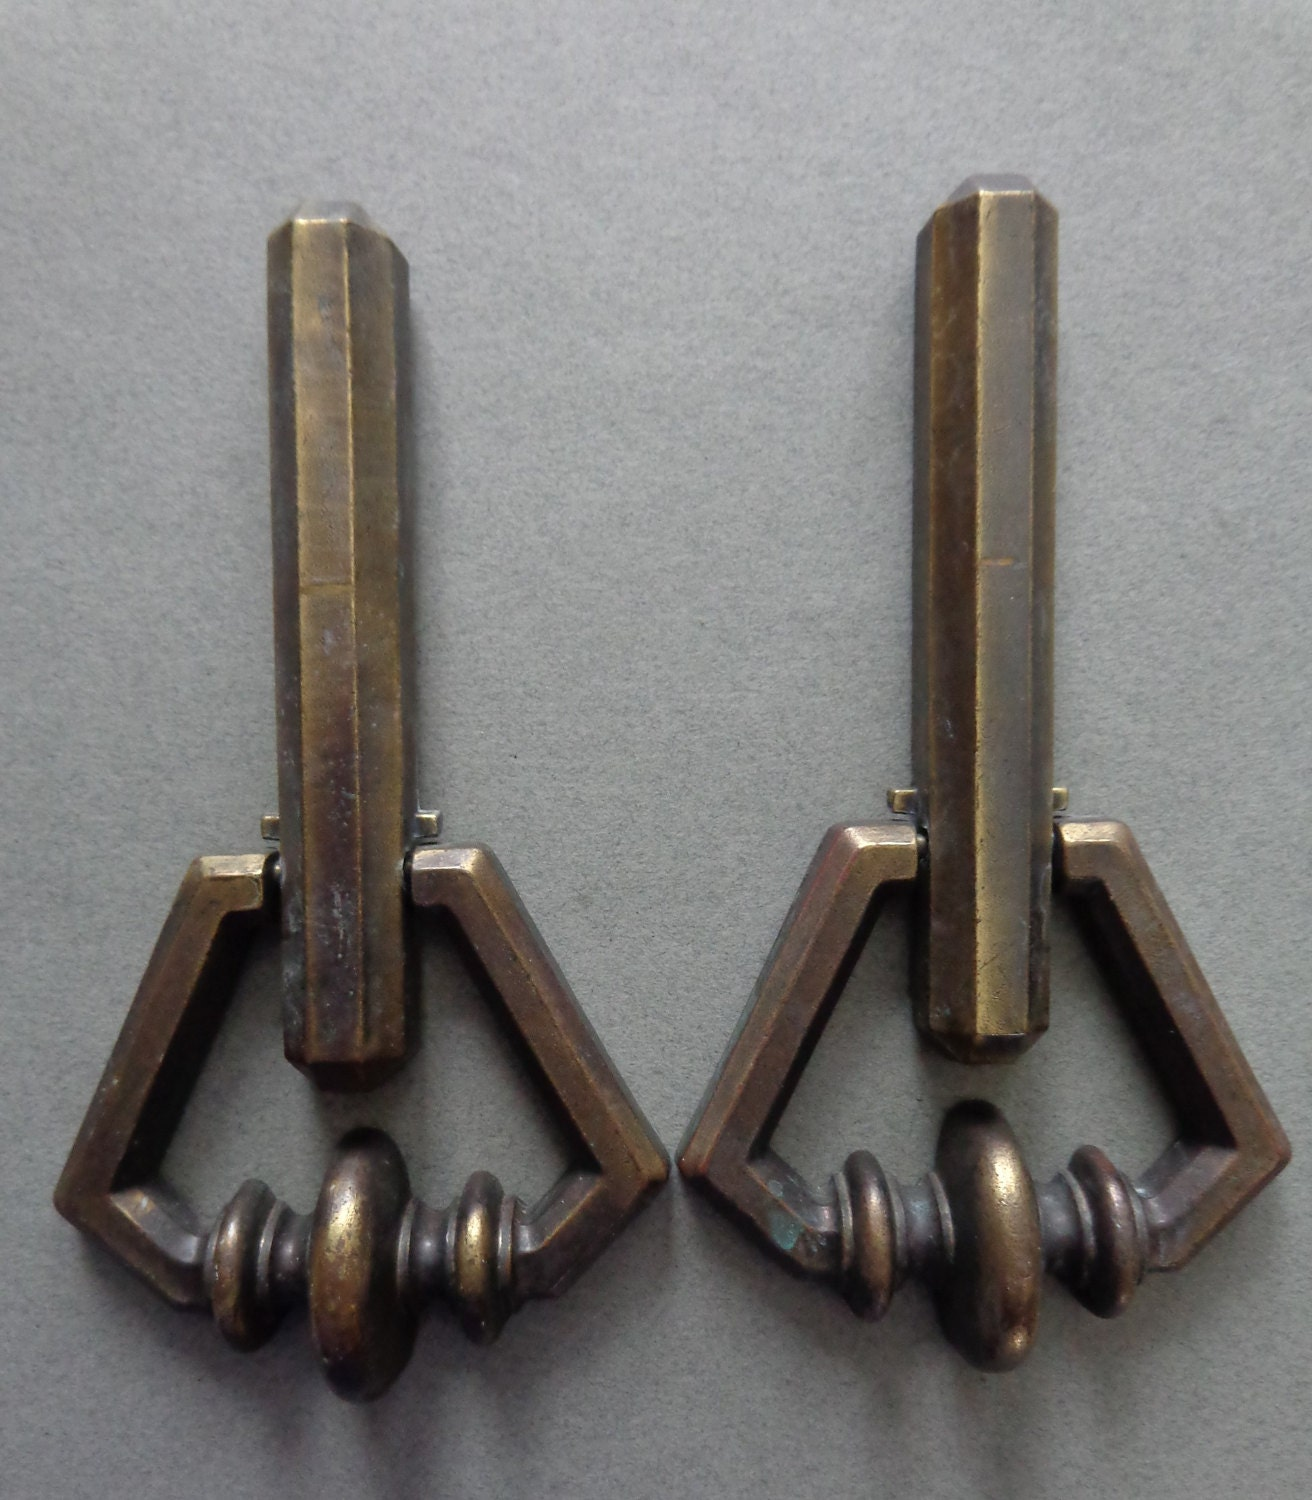 Vintage kbc heavy cabinet drop pulls and backplates keeler - Drop pulls for cabinets ...